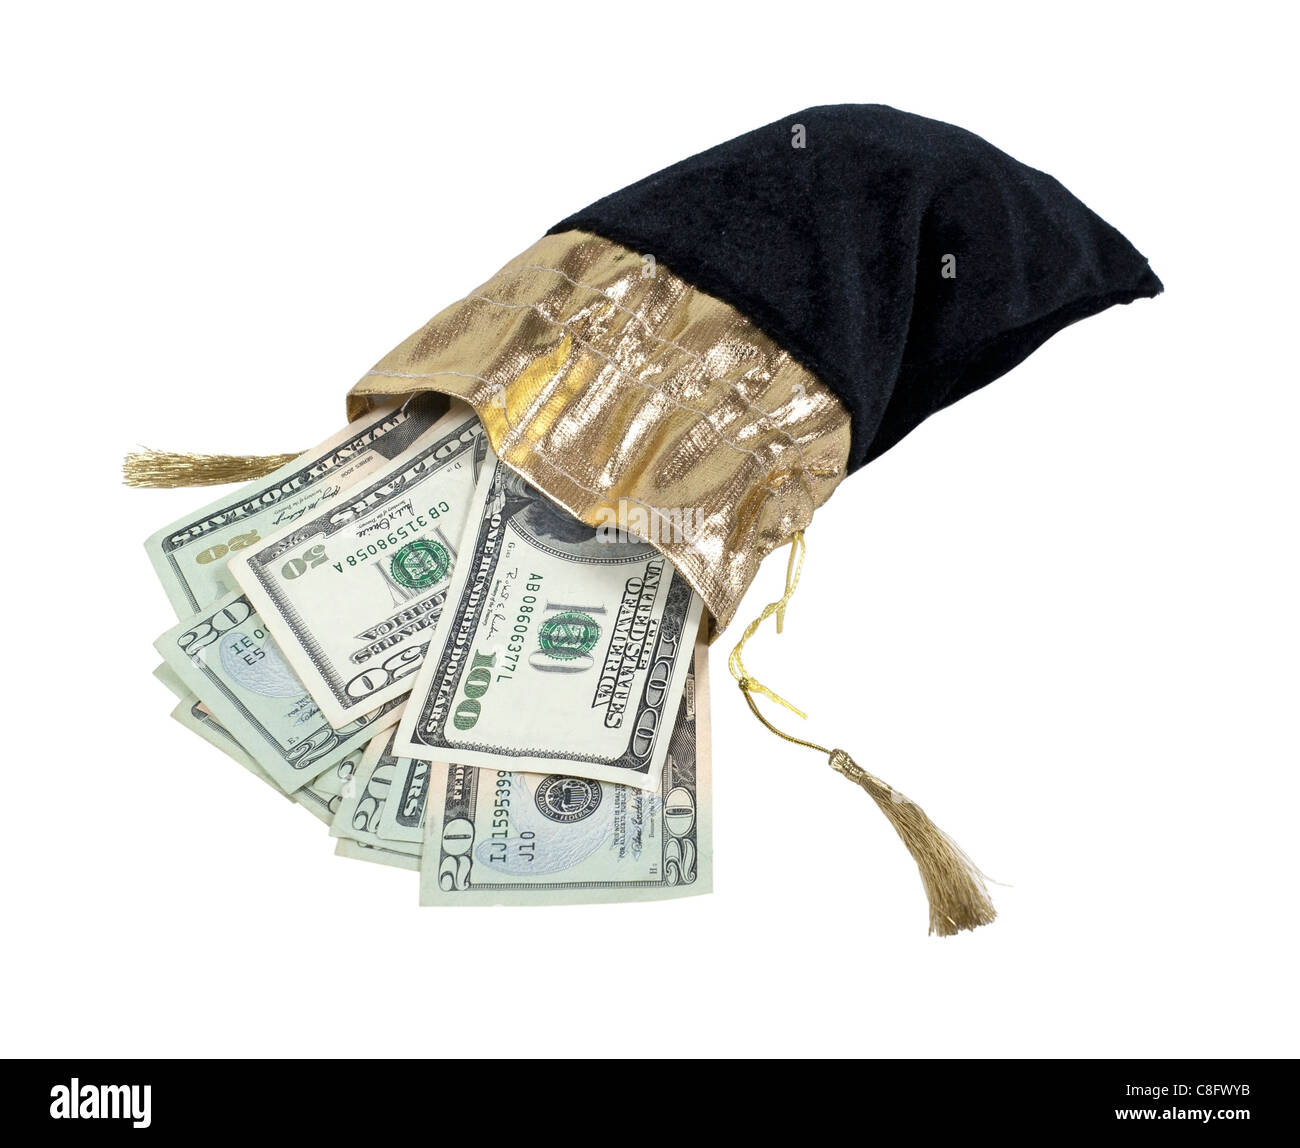 Money in the form of many large bills in a black velvet drawstring bag with golden accents - path included - Stock Image